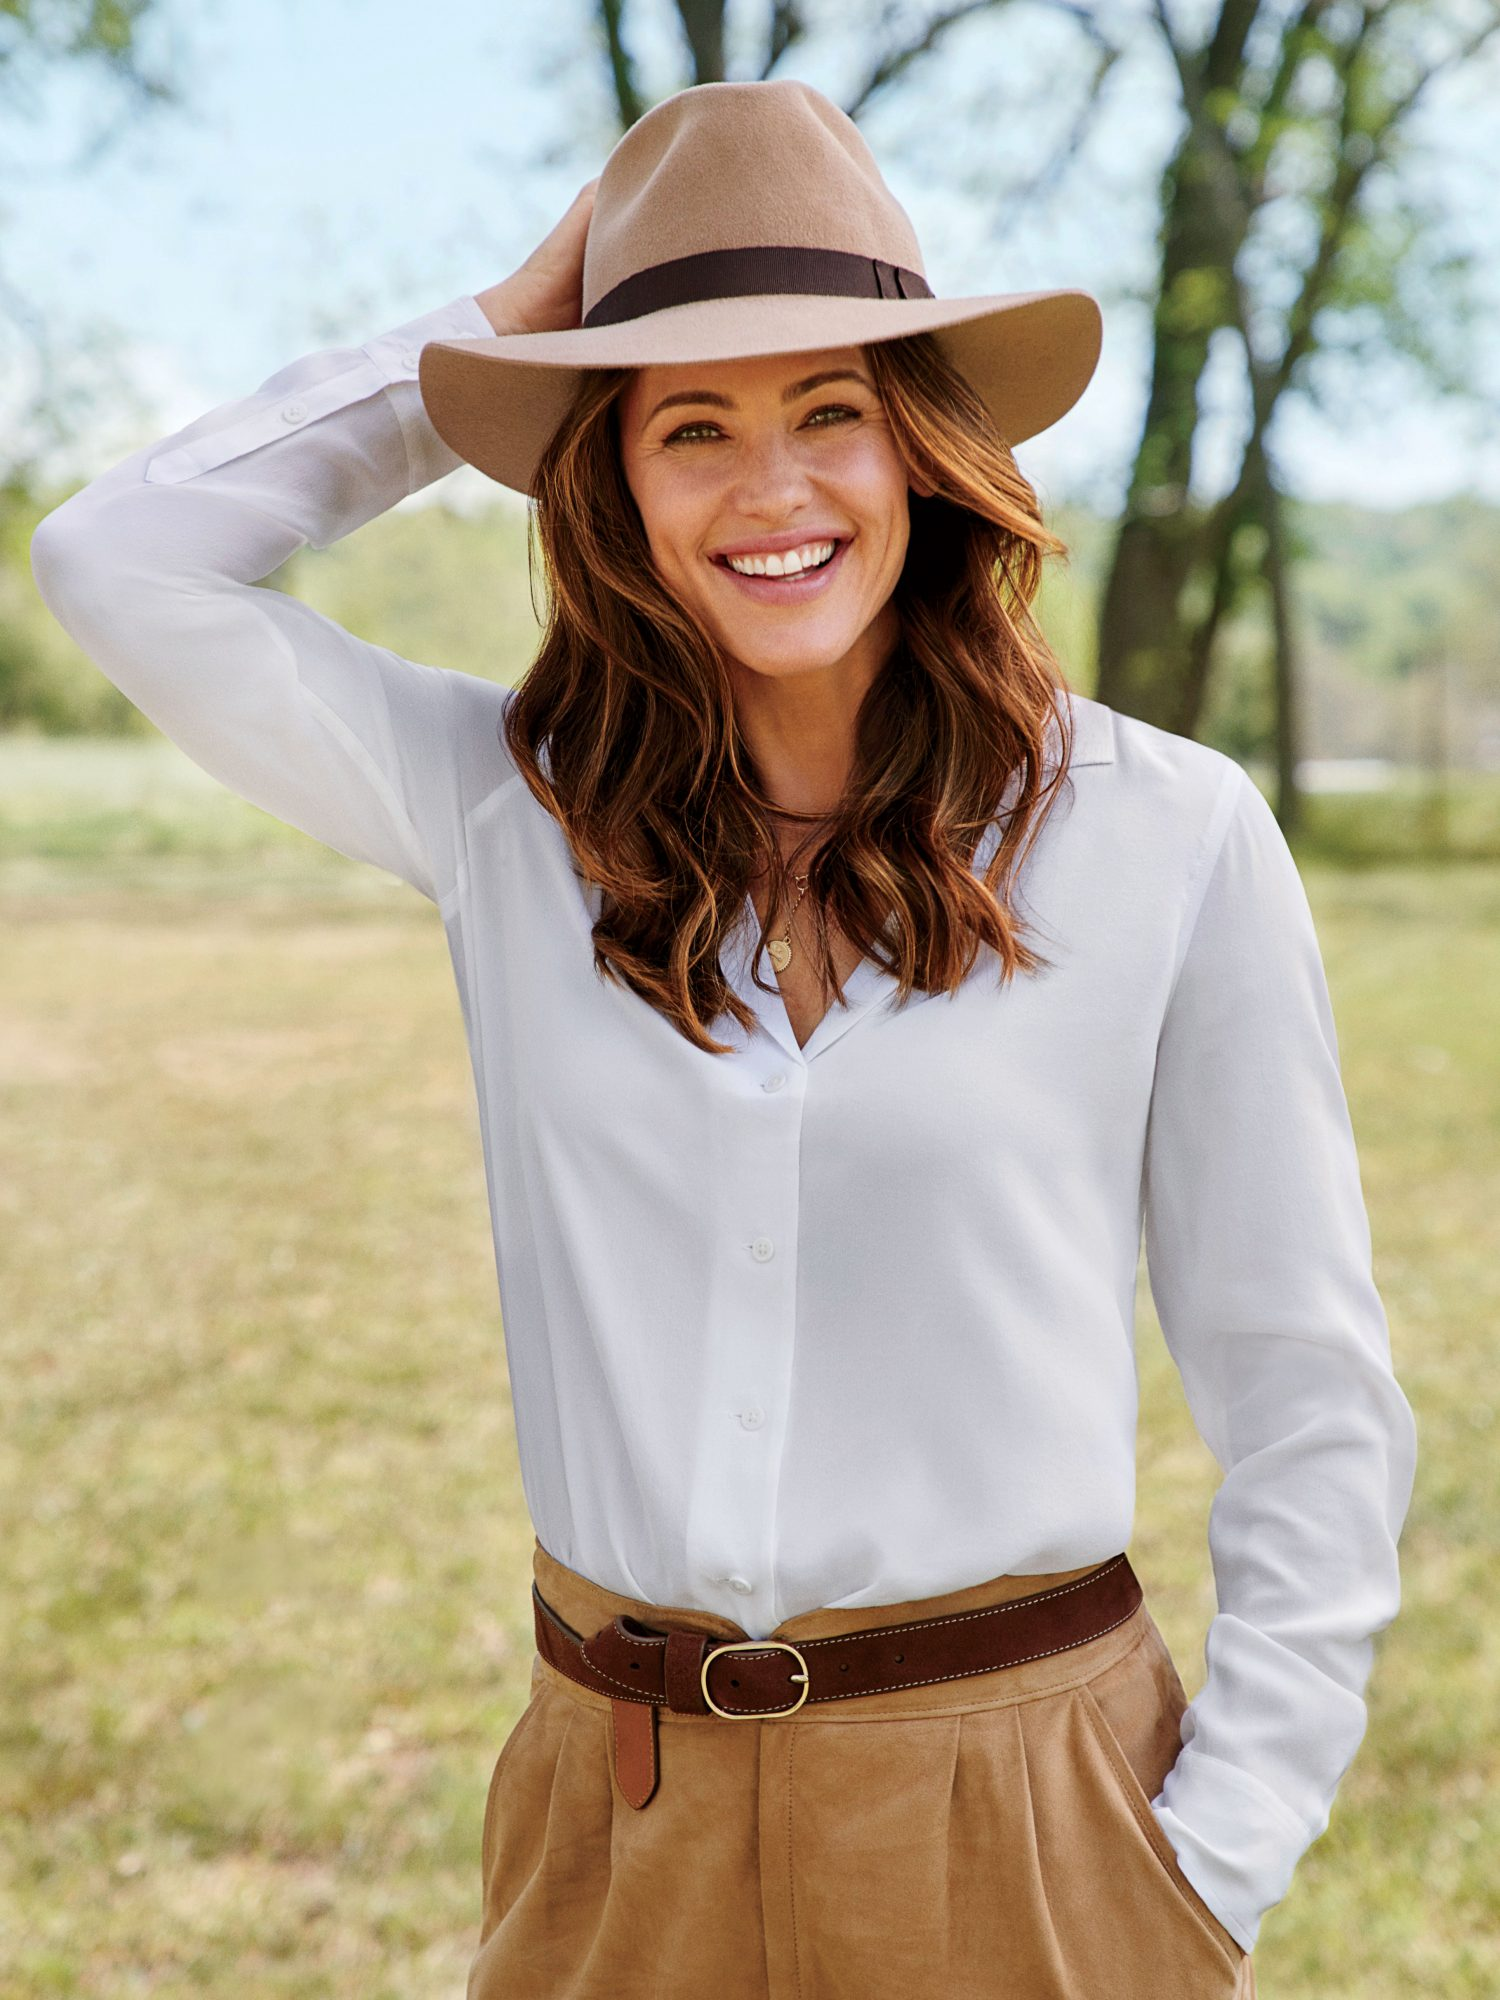 Jennifer Garner in Oklahoma